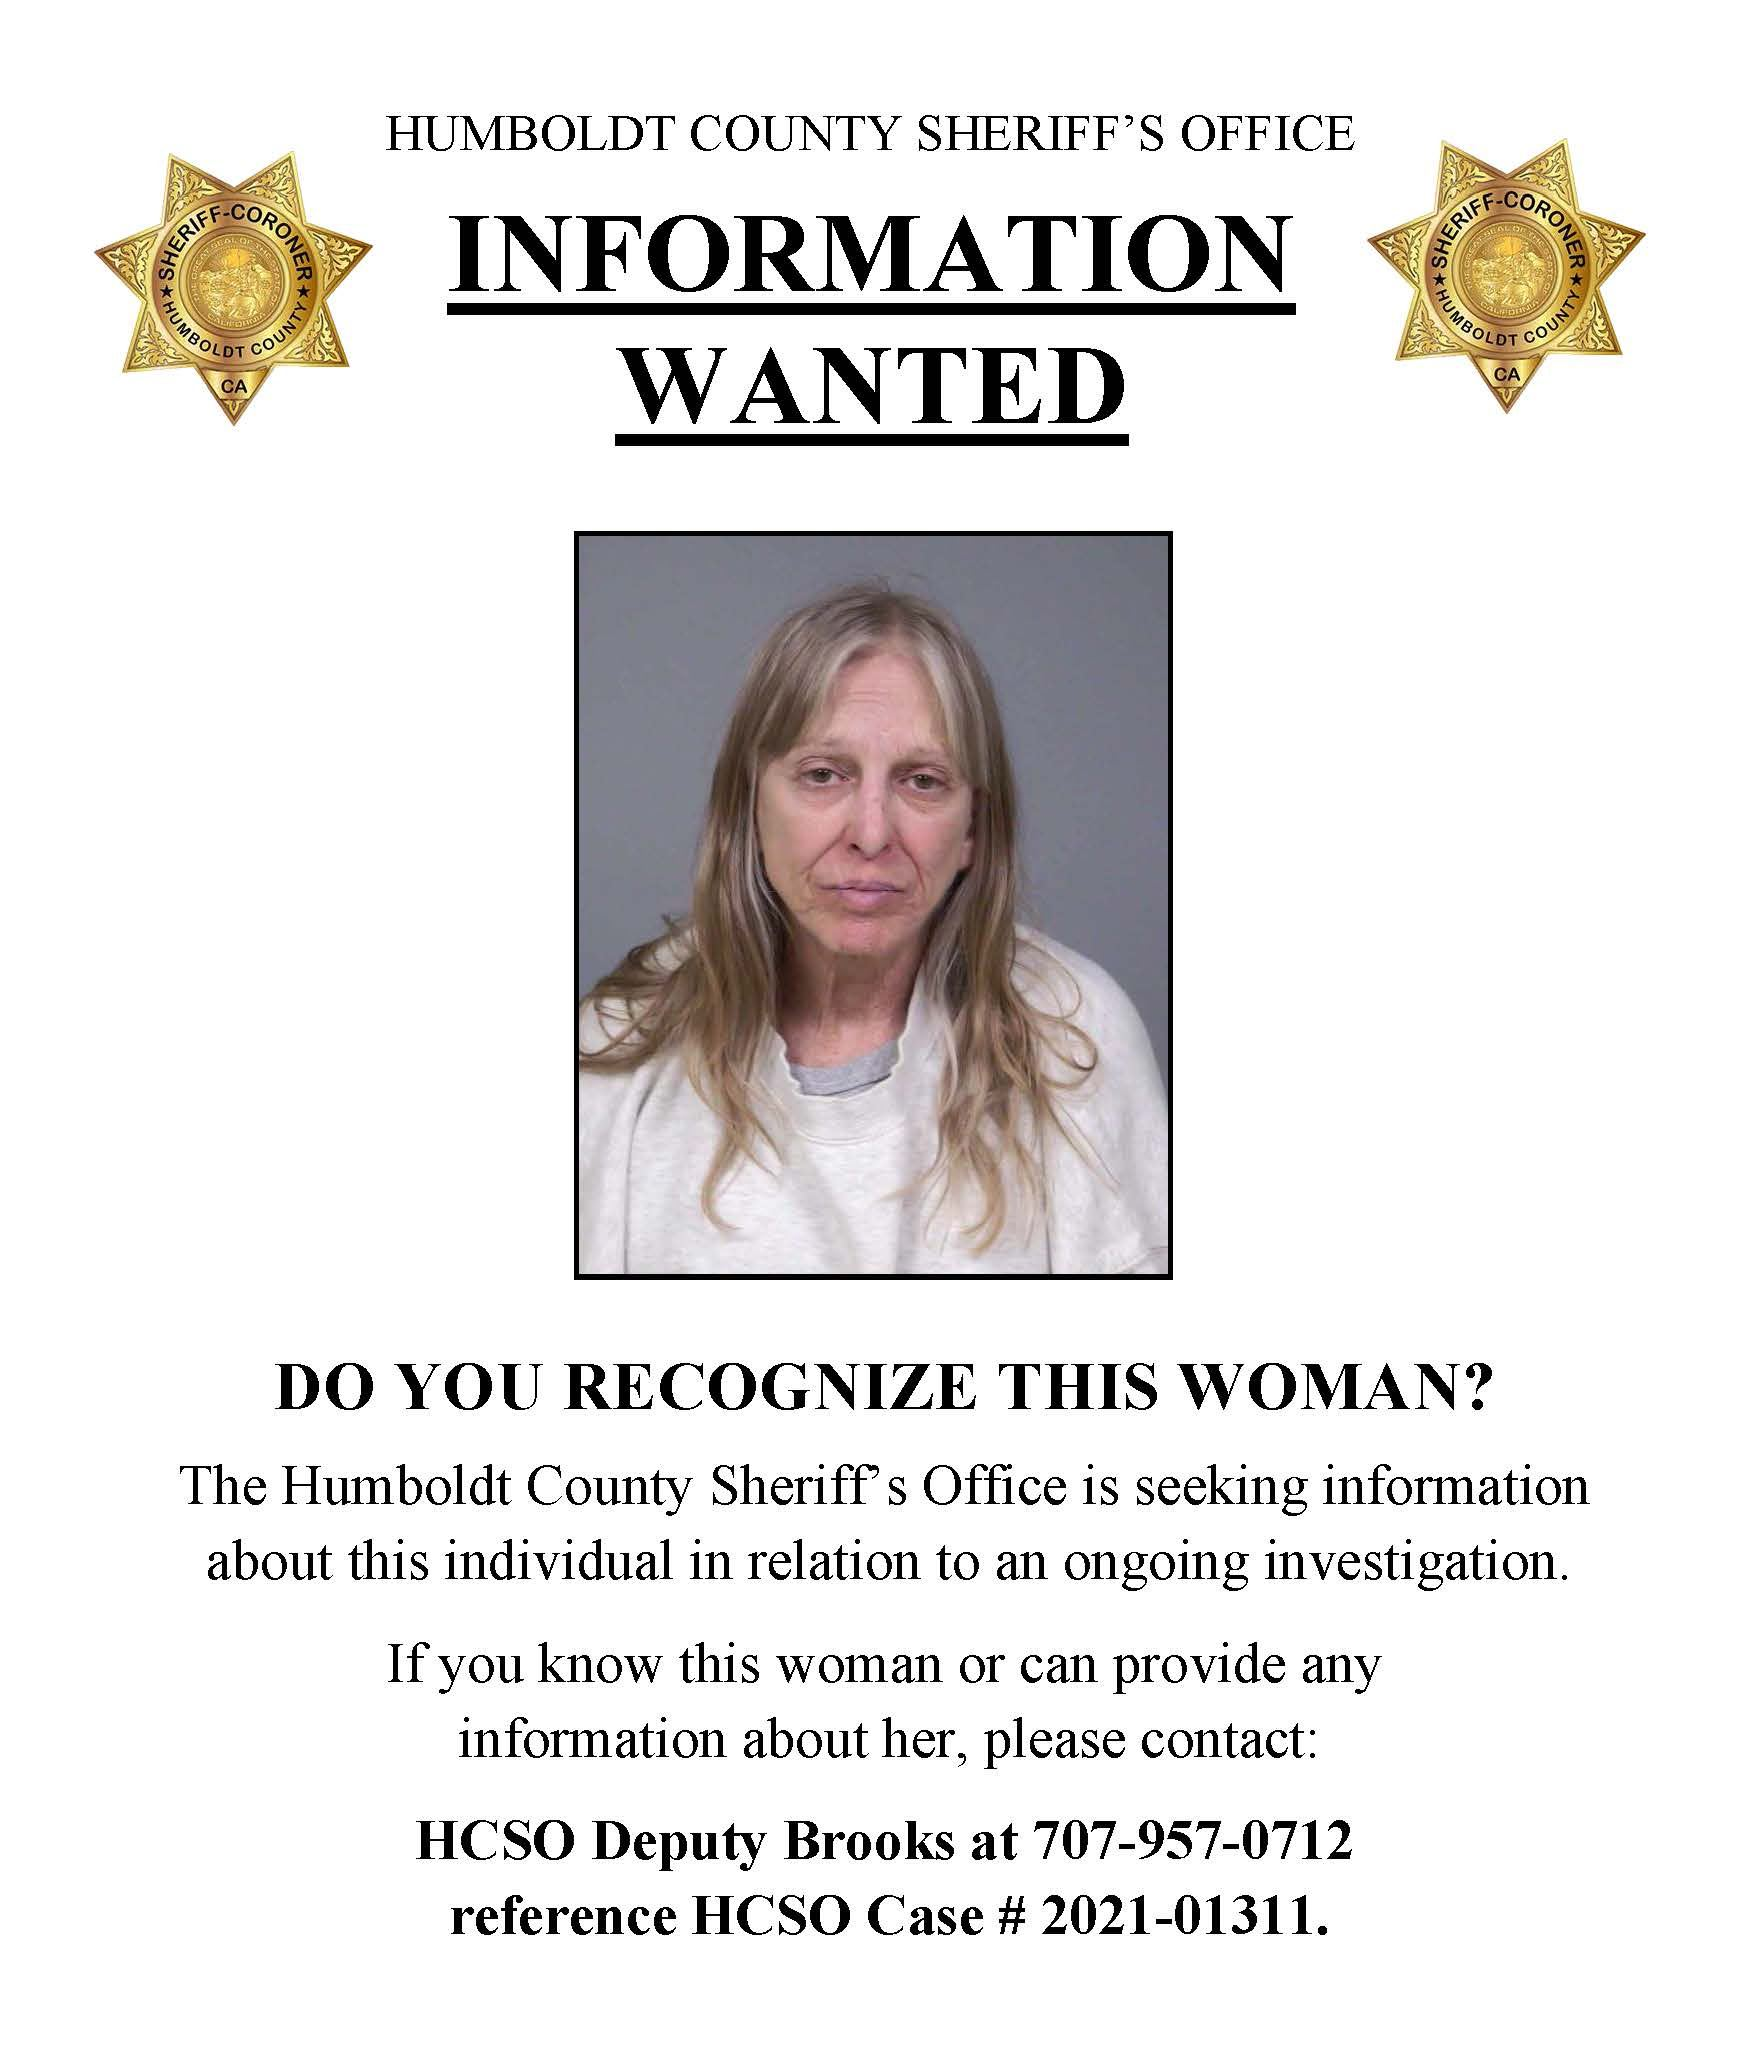 DO YOU RECOGNIZE THIS WOMAN?  The Humboldt County Sheriff's Office is seeking information